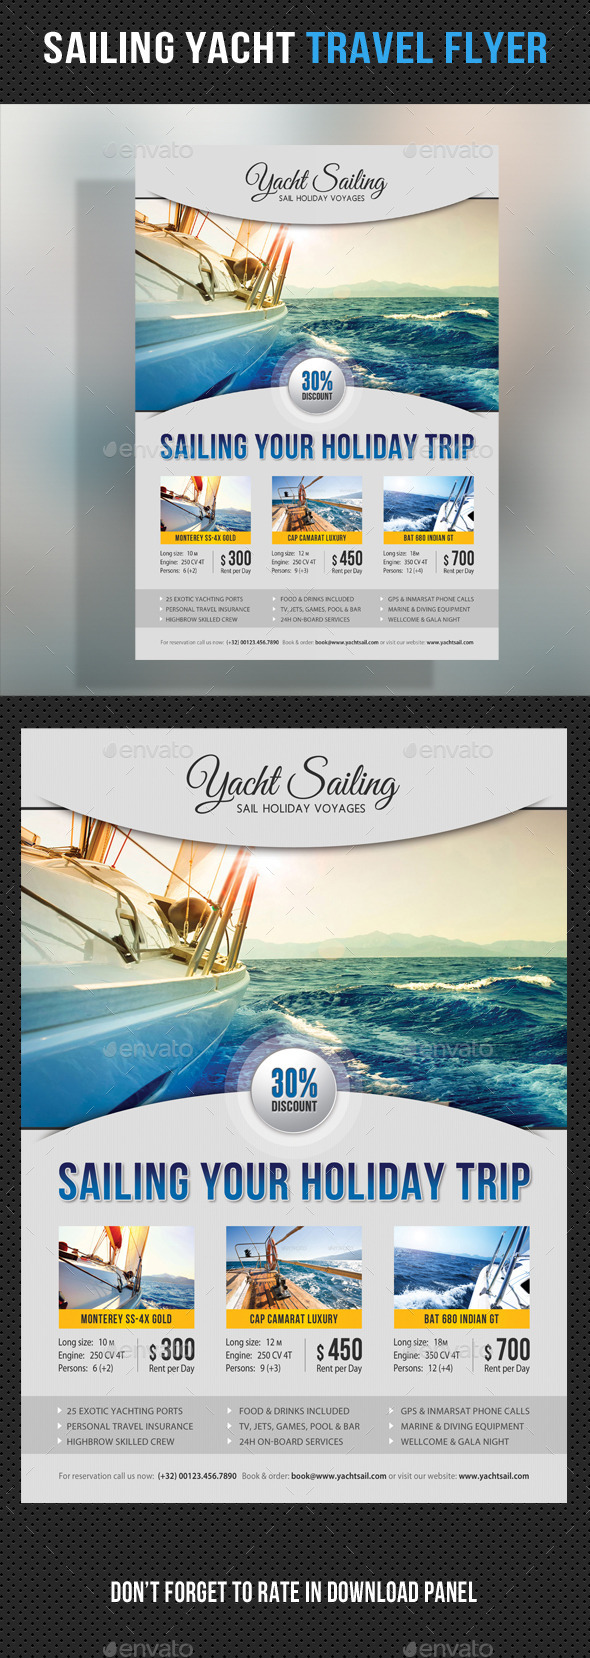 Sailing Yacht Travel Flyer 07 - Corporate Flyers